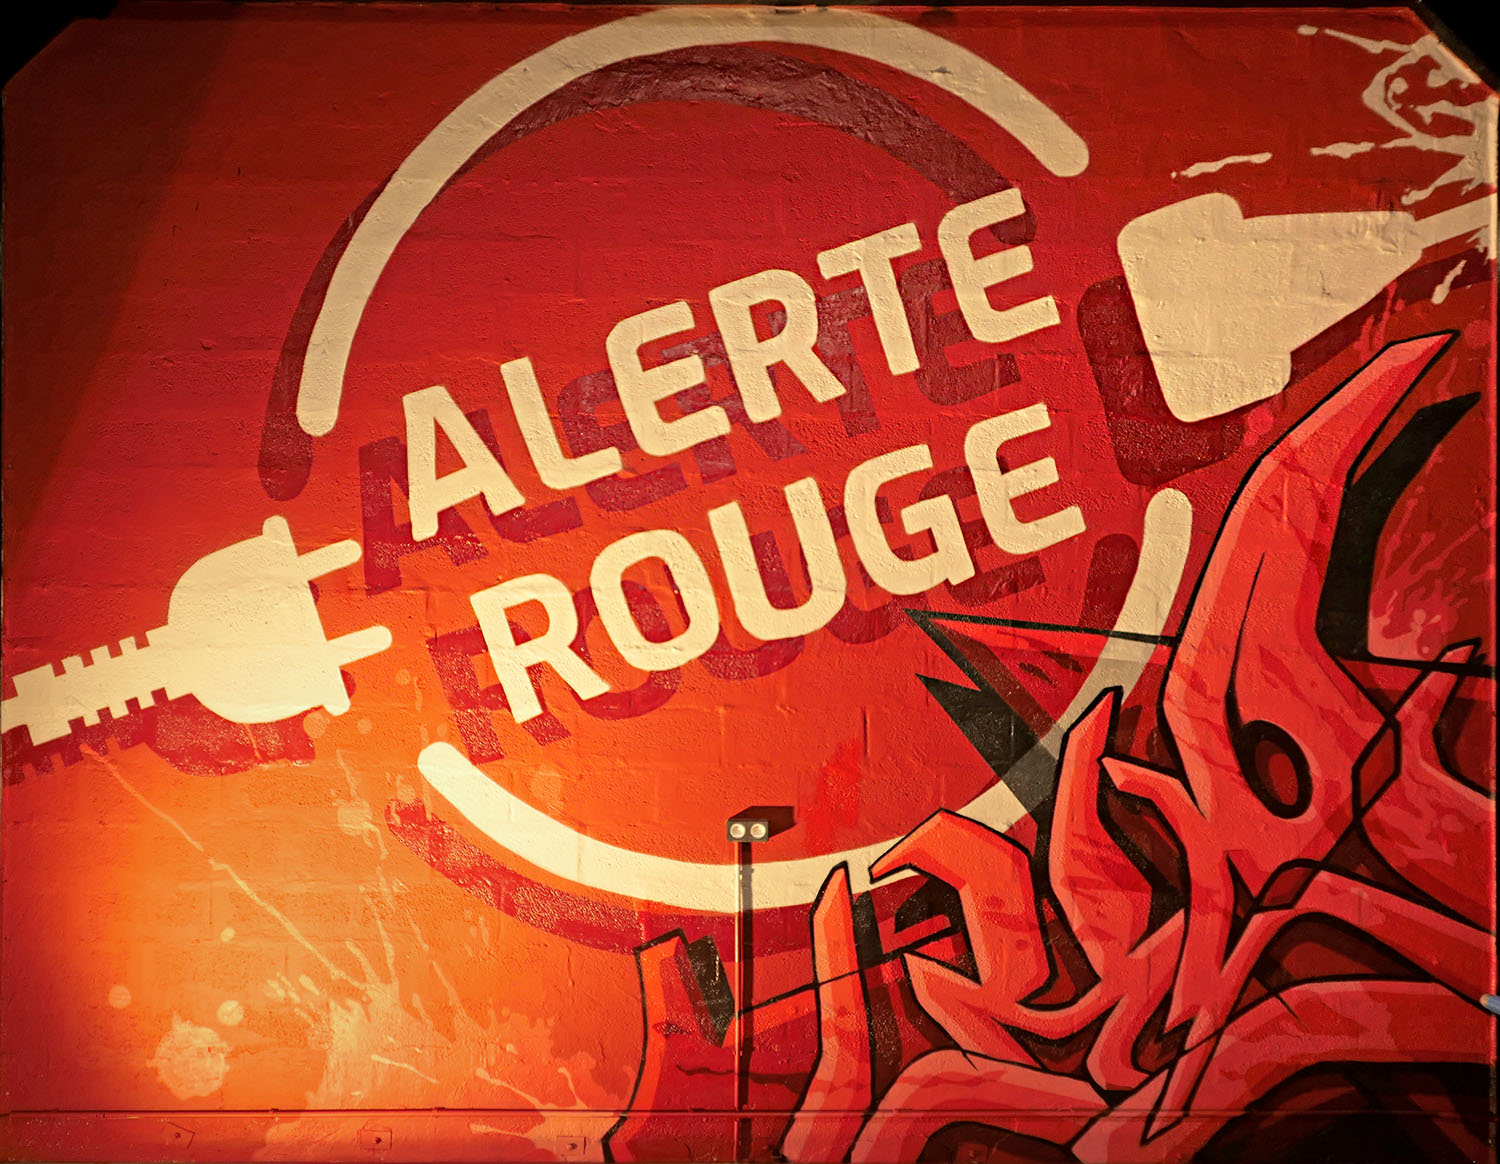 Heta-Monsieur-S-Alerte-Rouge-event-again